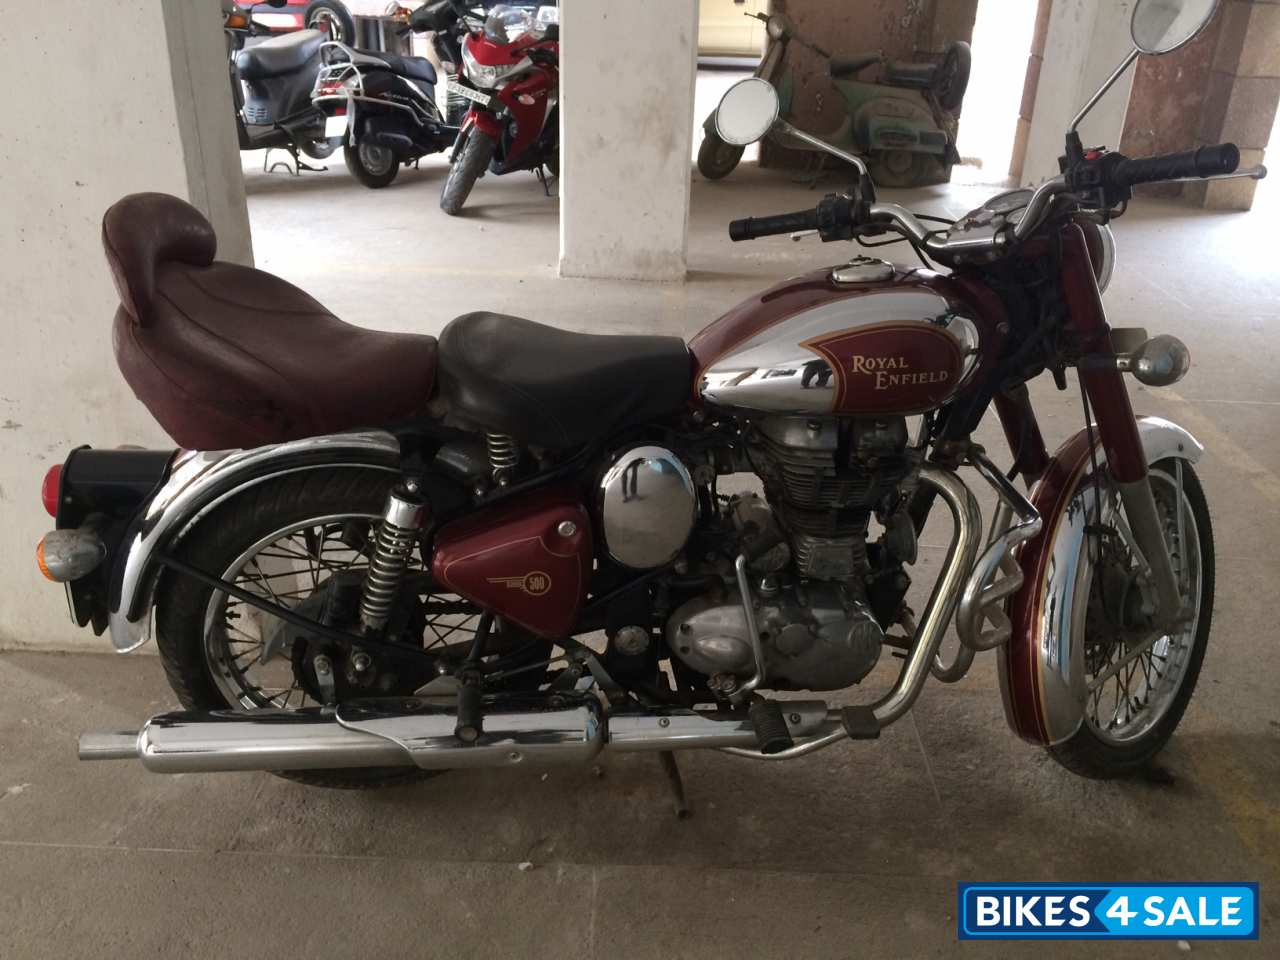 Used 2012 Model Royal Enfield Classic Chrome For Sale In Dehradun Id 108051 Maroon Colour Bikes4sale